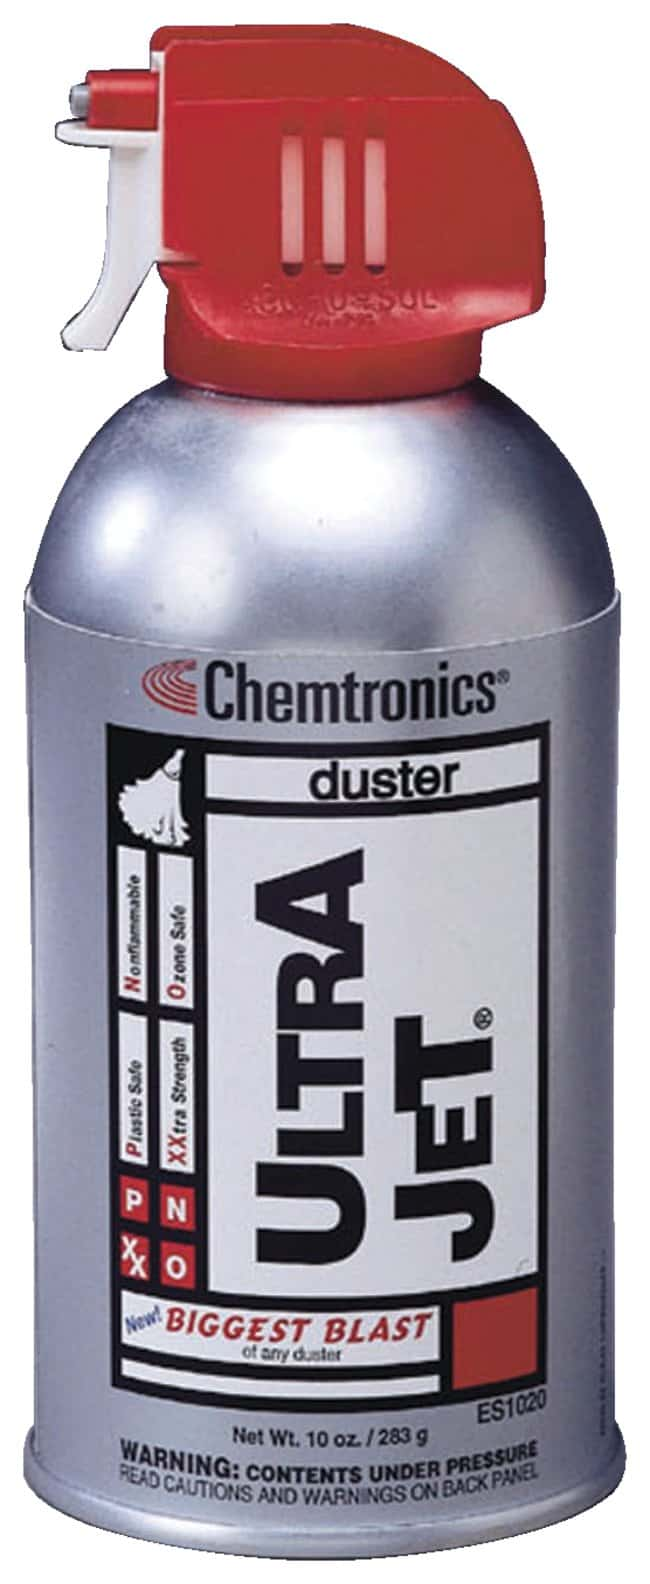 Chemtronics Coventry Ultrajet Dusters:Wipes, Towels and Cleaning:Janitorial